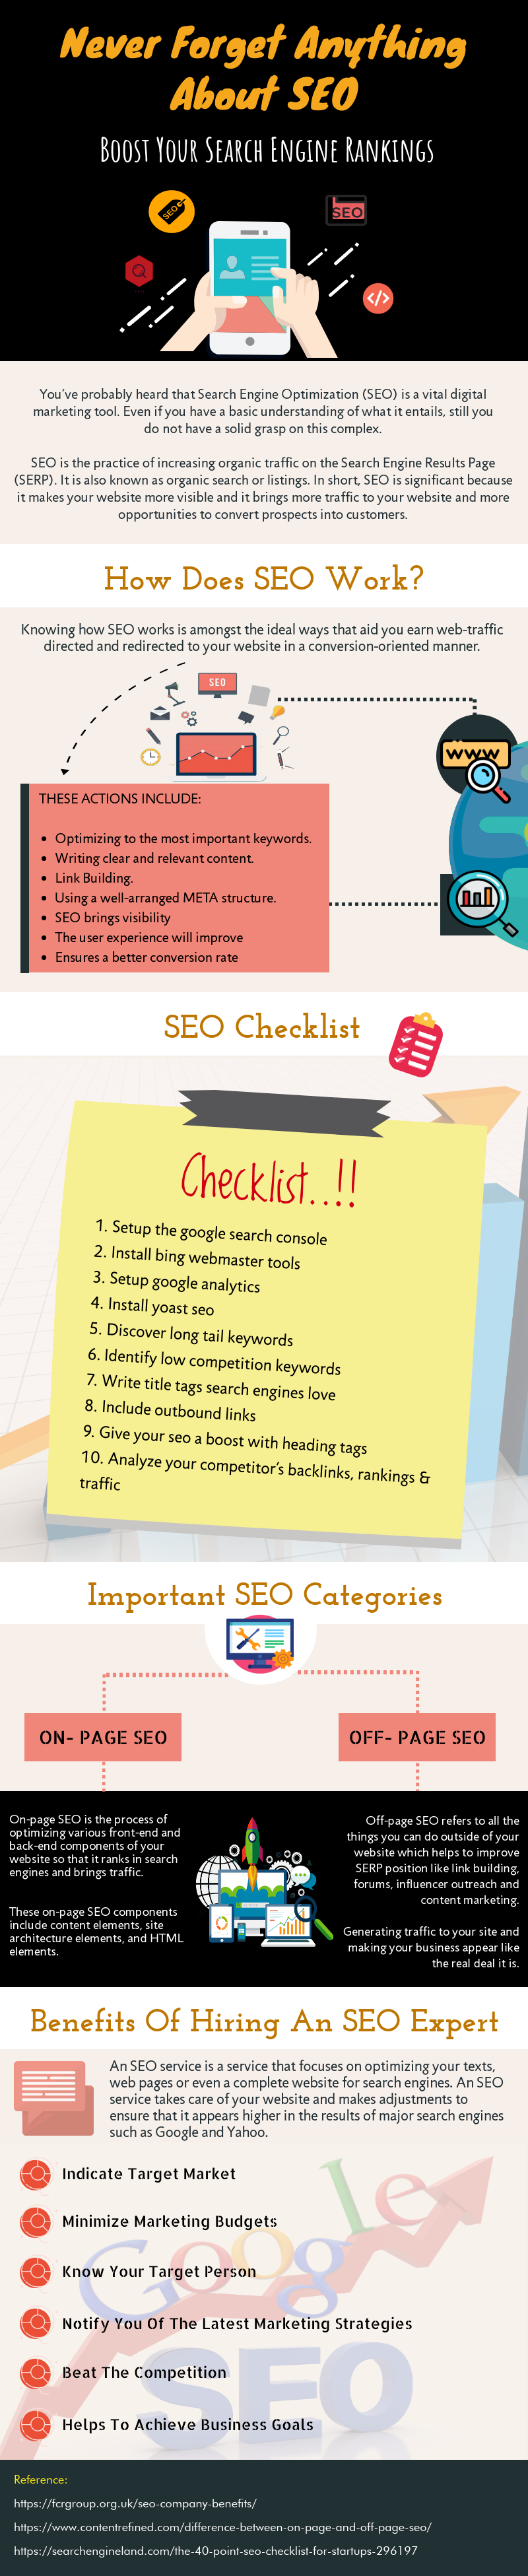 Boost Your Search Rankings